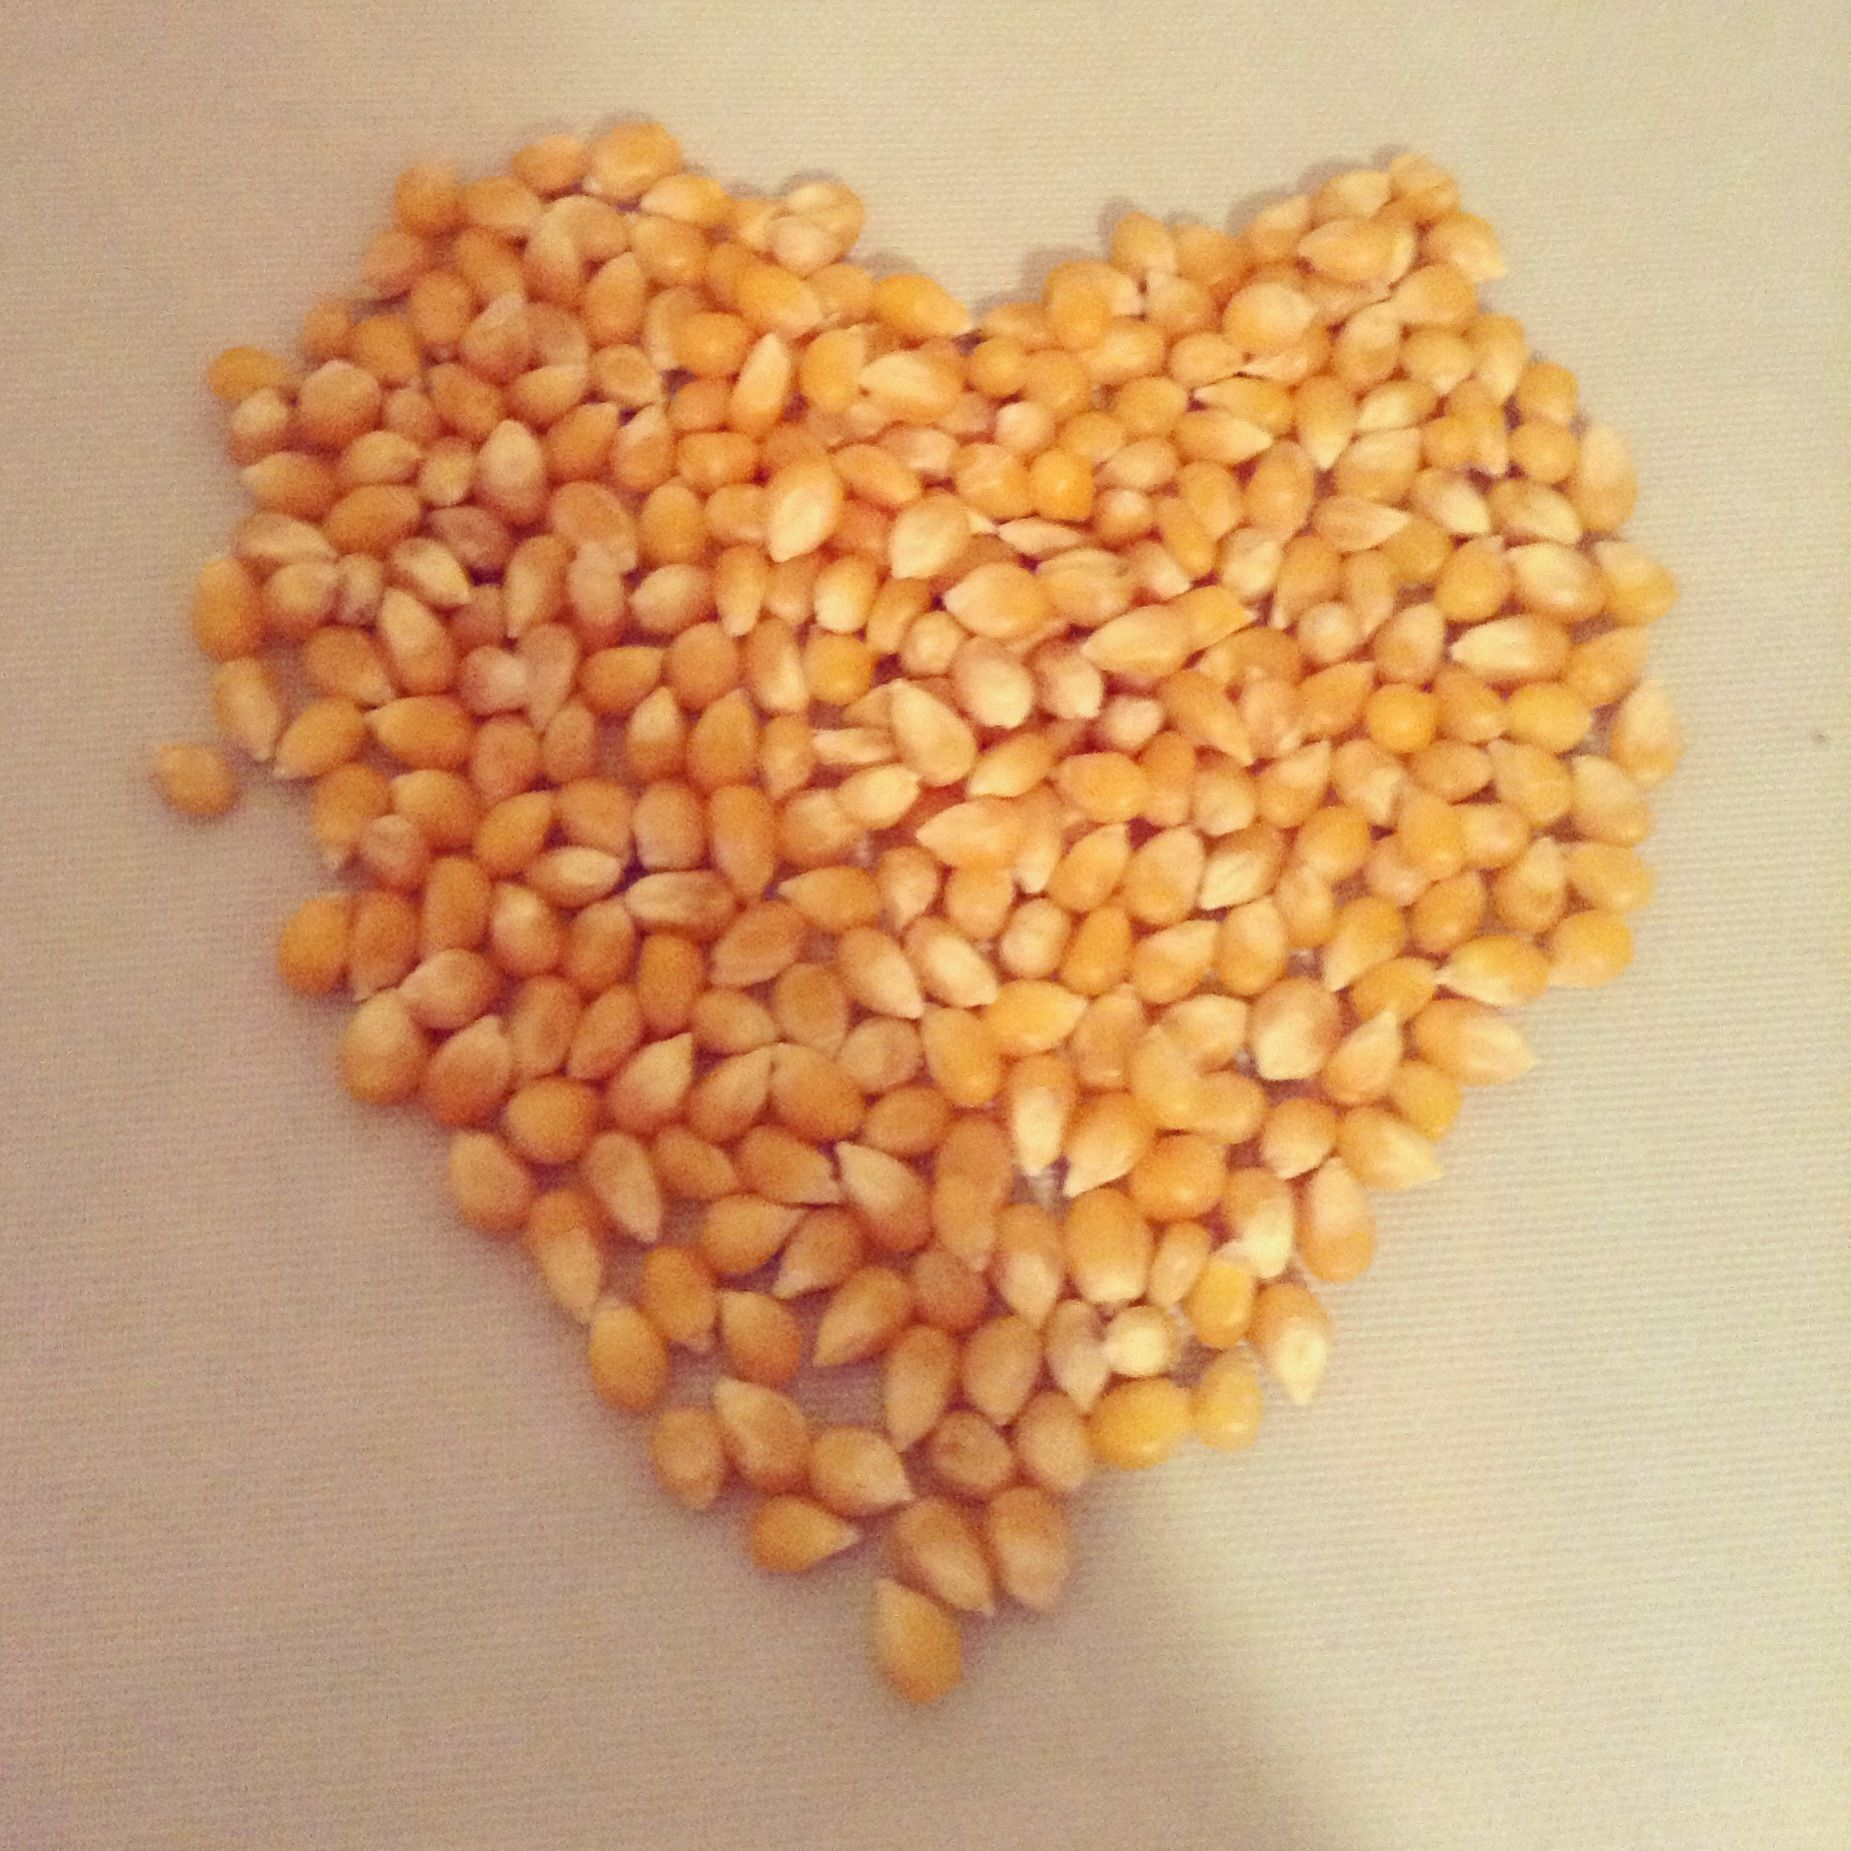 I was bored so I made a heart out of  popcorn